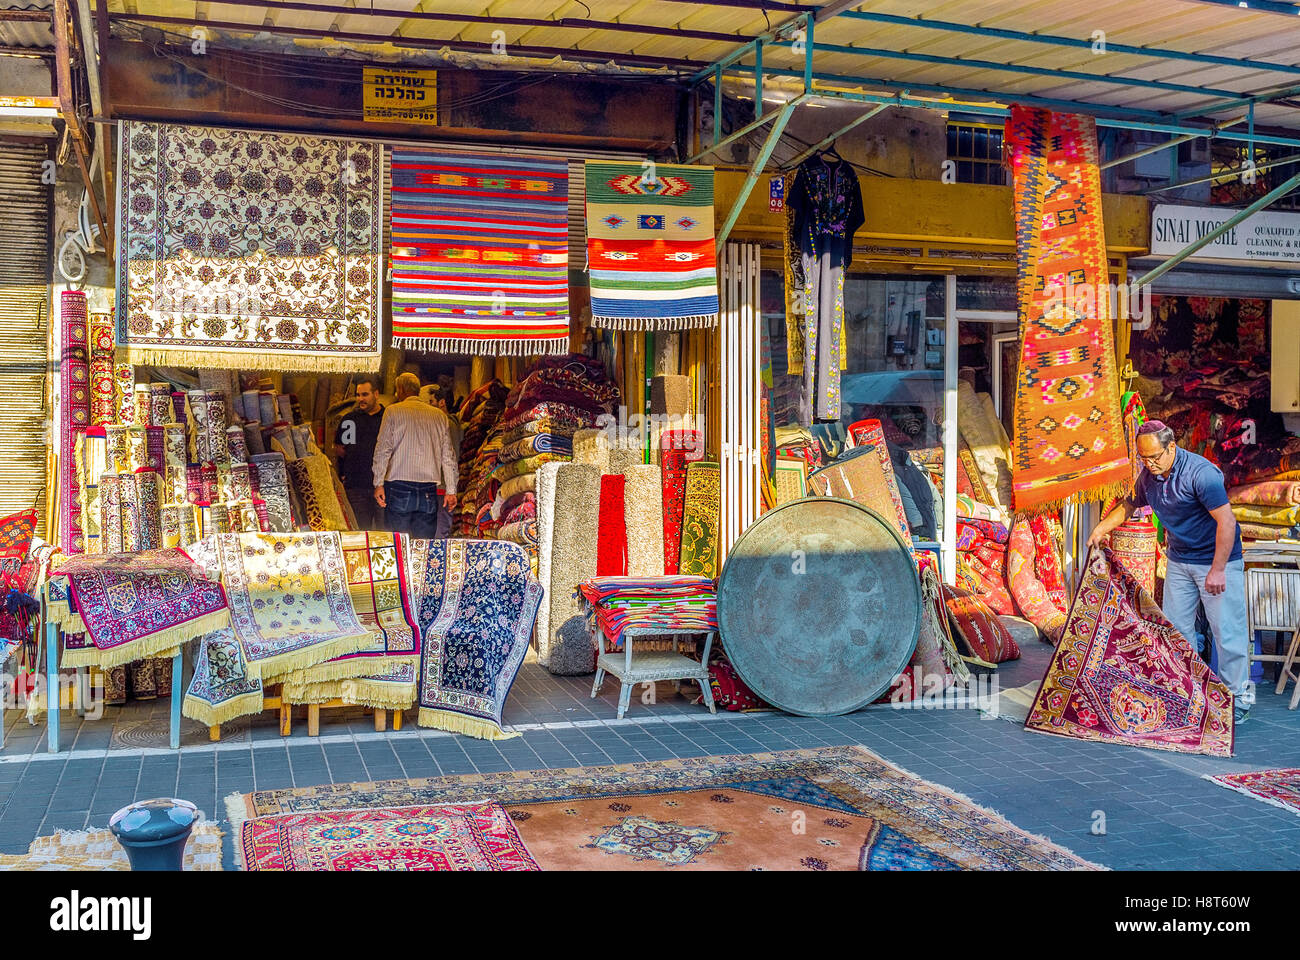 Stock Photo   The Rug Store In The Flea Market Of Jaffa, Is The Best Place  To Choose New Or Used Kilim, Or Watch The Making Of Rug Patchwork